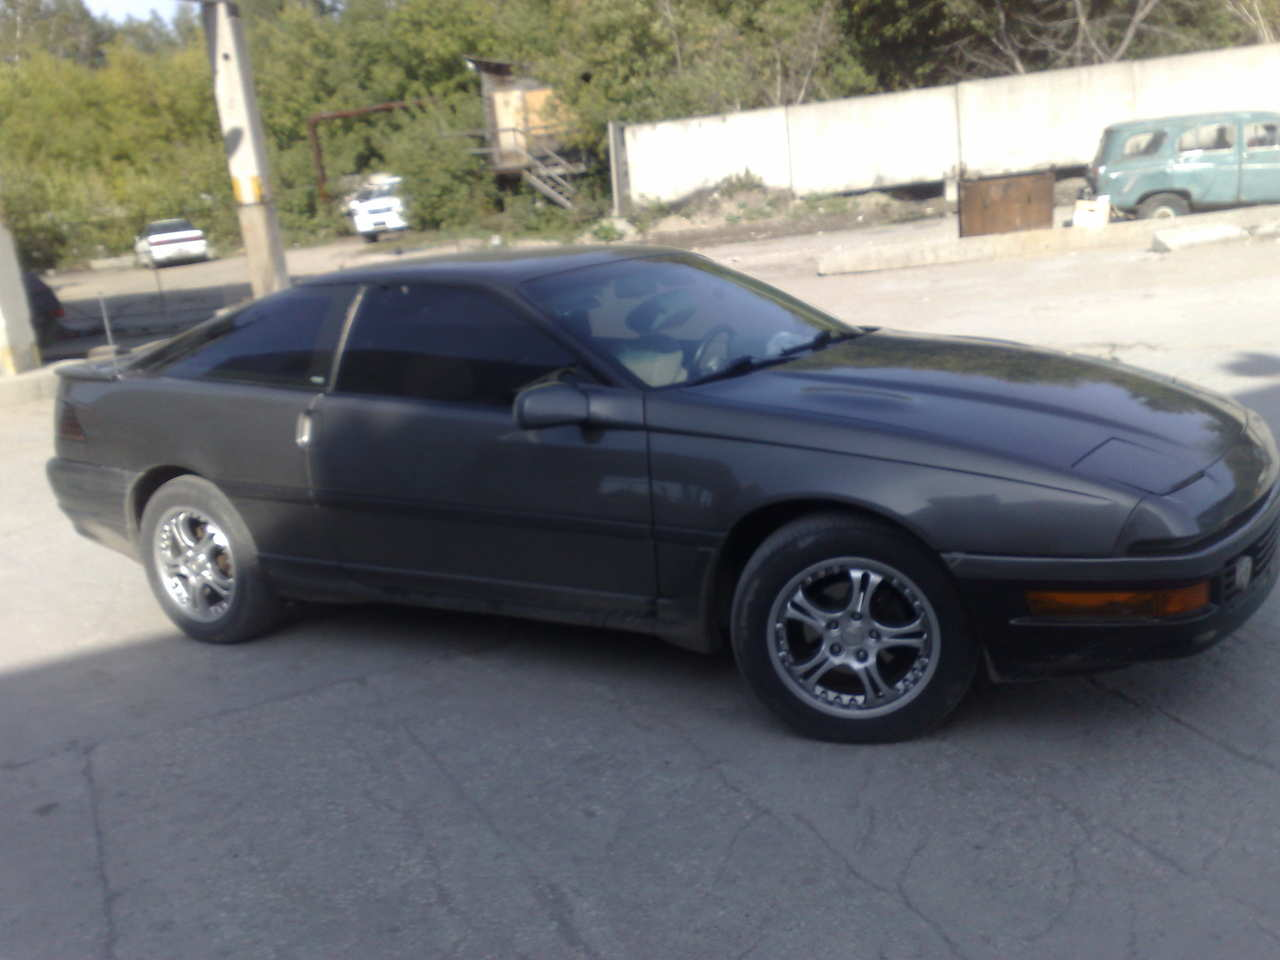 Ford probe 1993 6 ford probe 1993 6